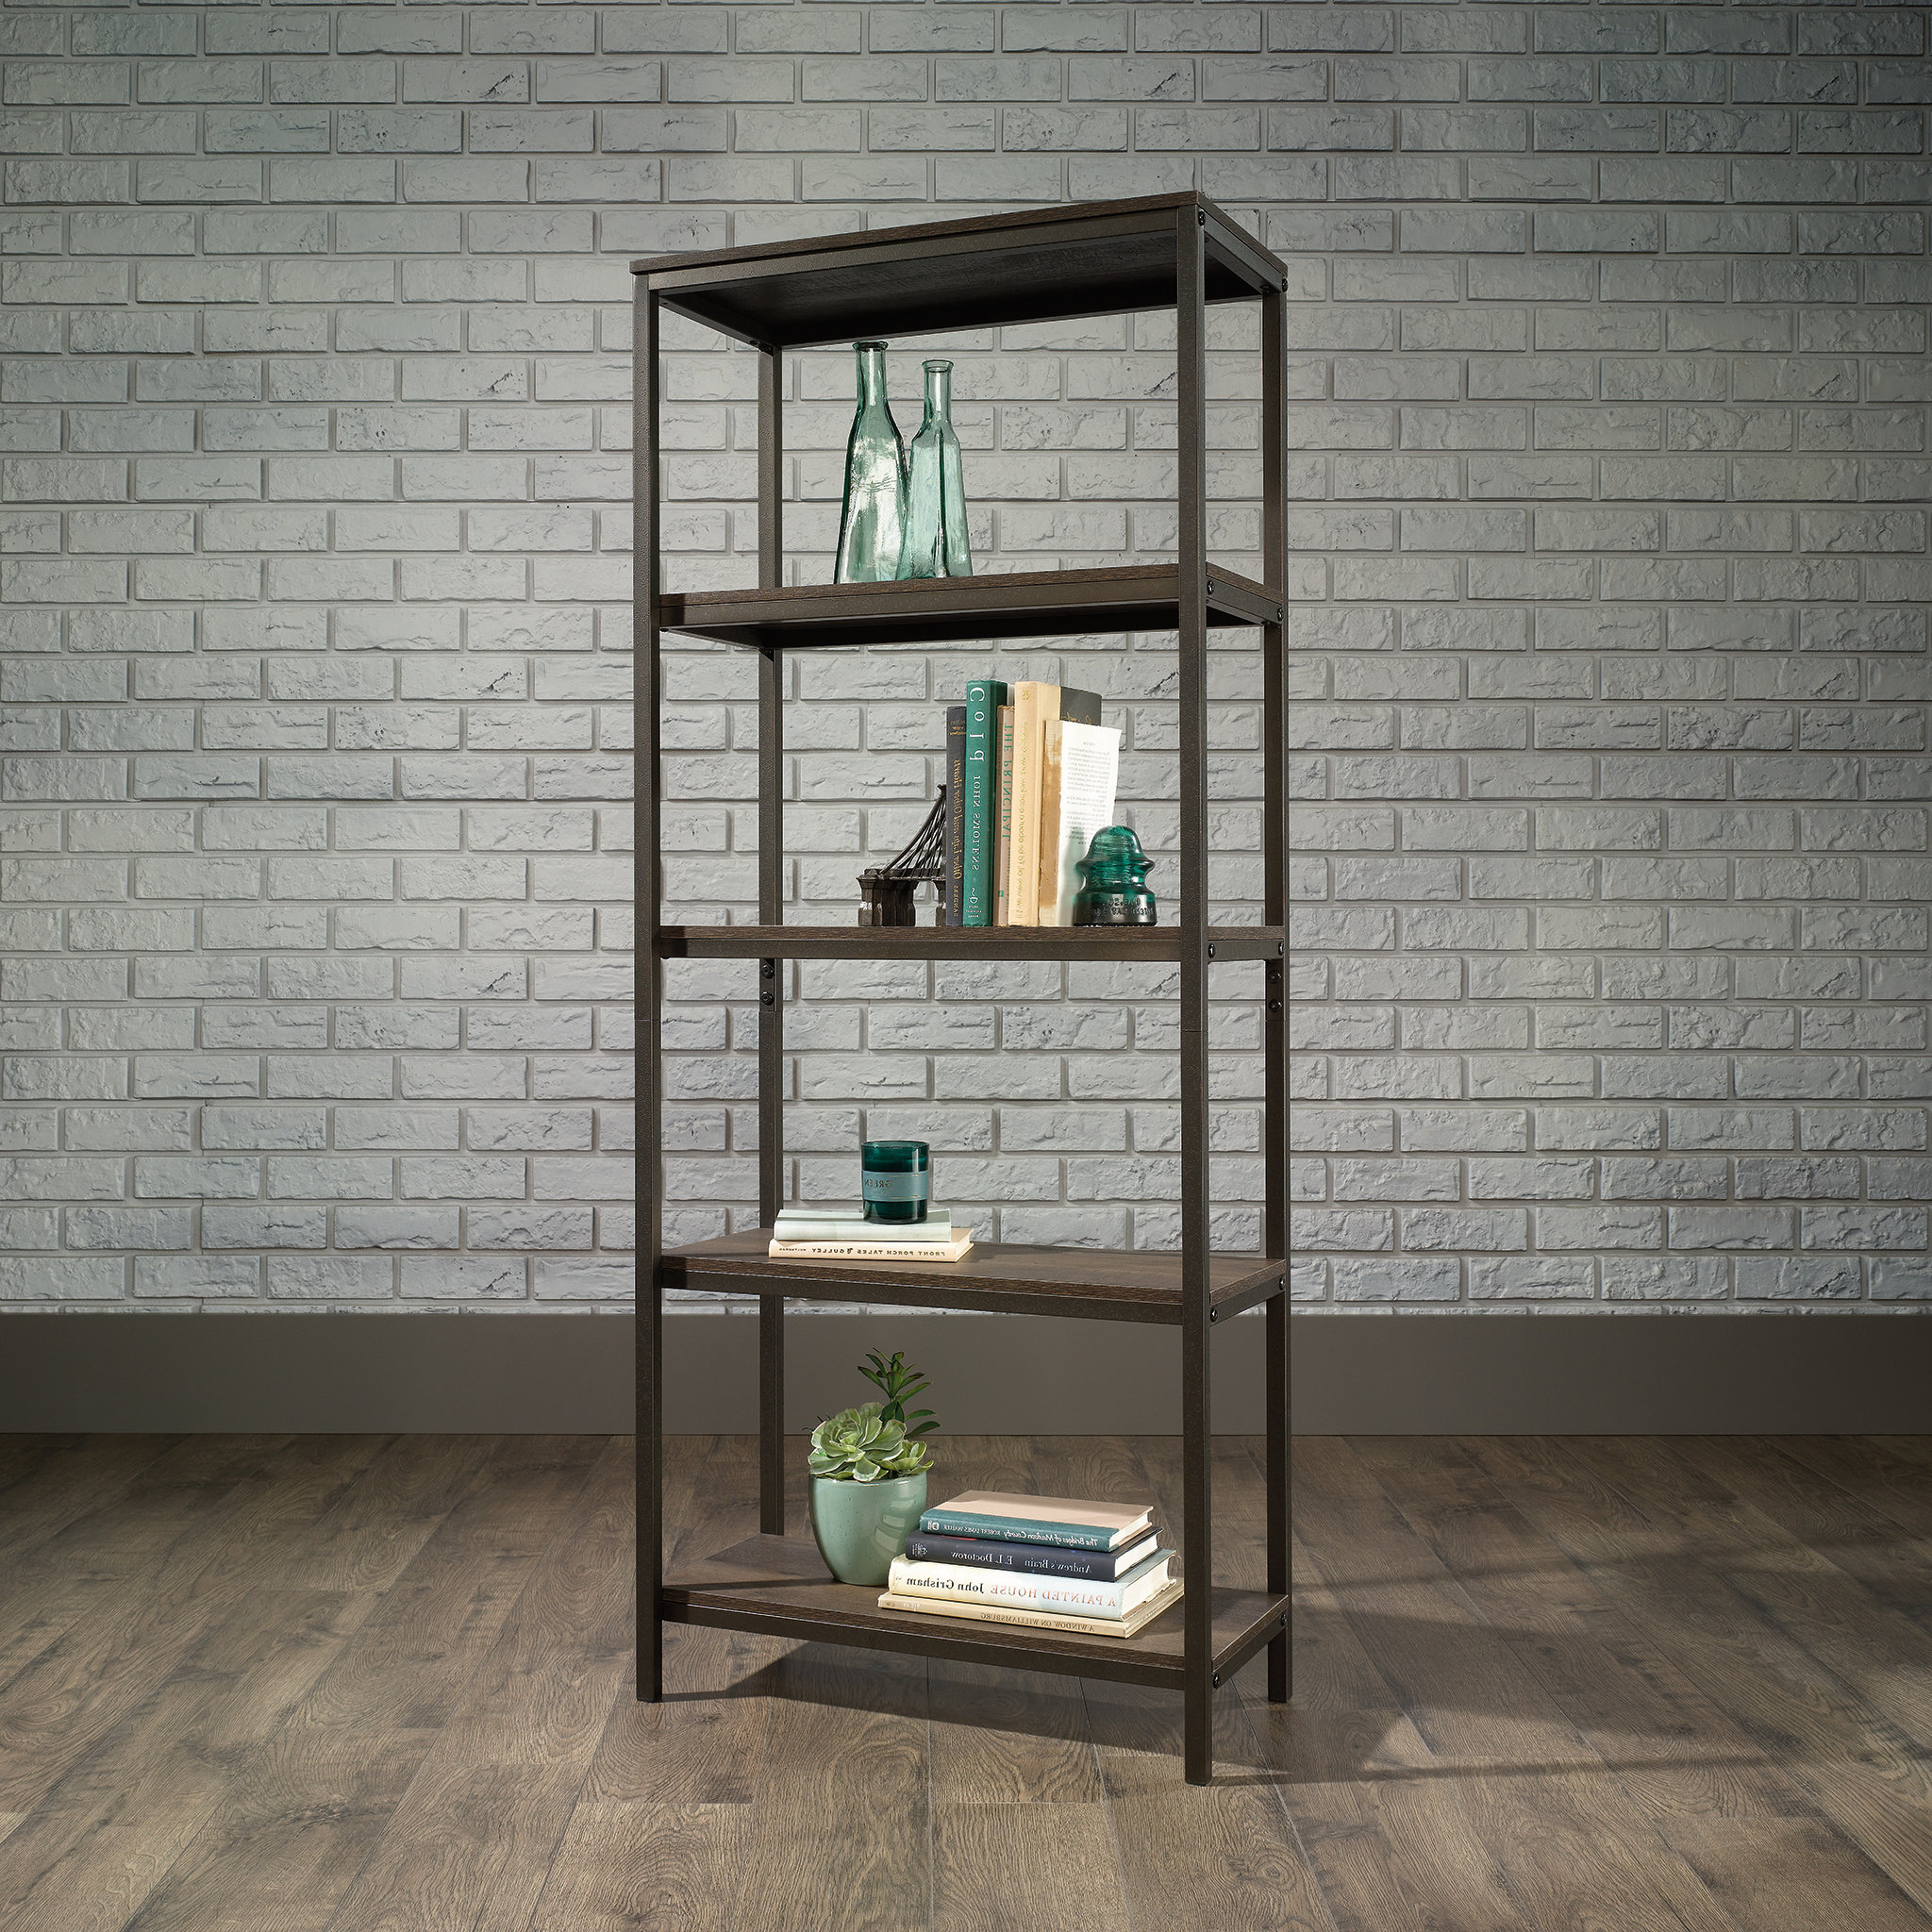 Newest Ermont Etagere Bookcase With Regard To Ermont Etagere Bookcases (View 8 of 20)